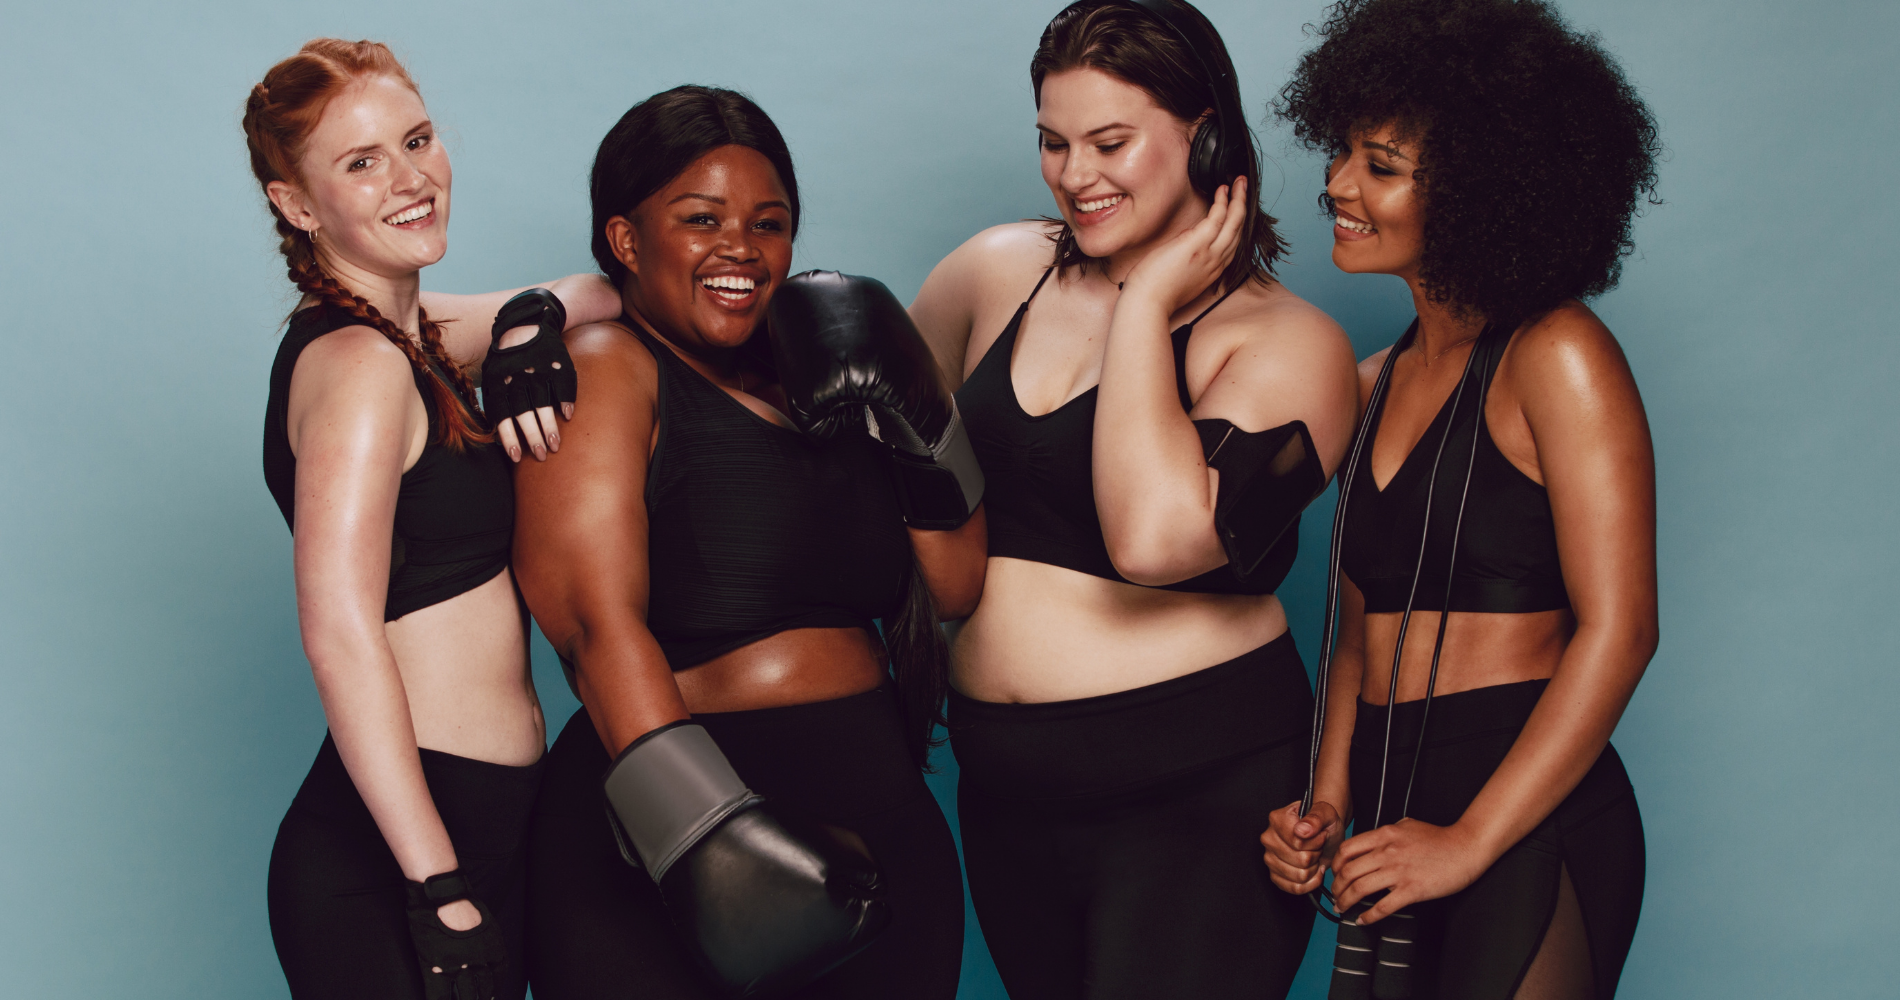 Body Acceptance vs. Body Positivity. What is the difference_